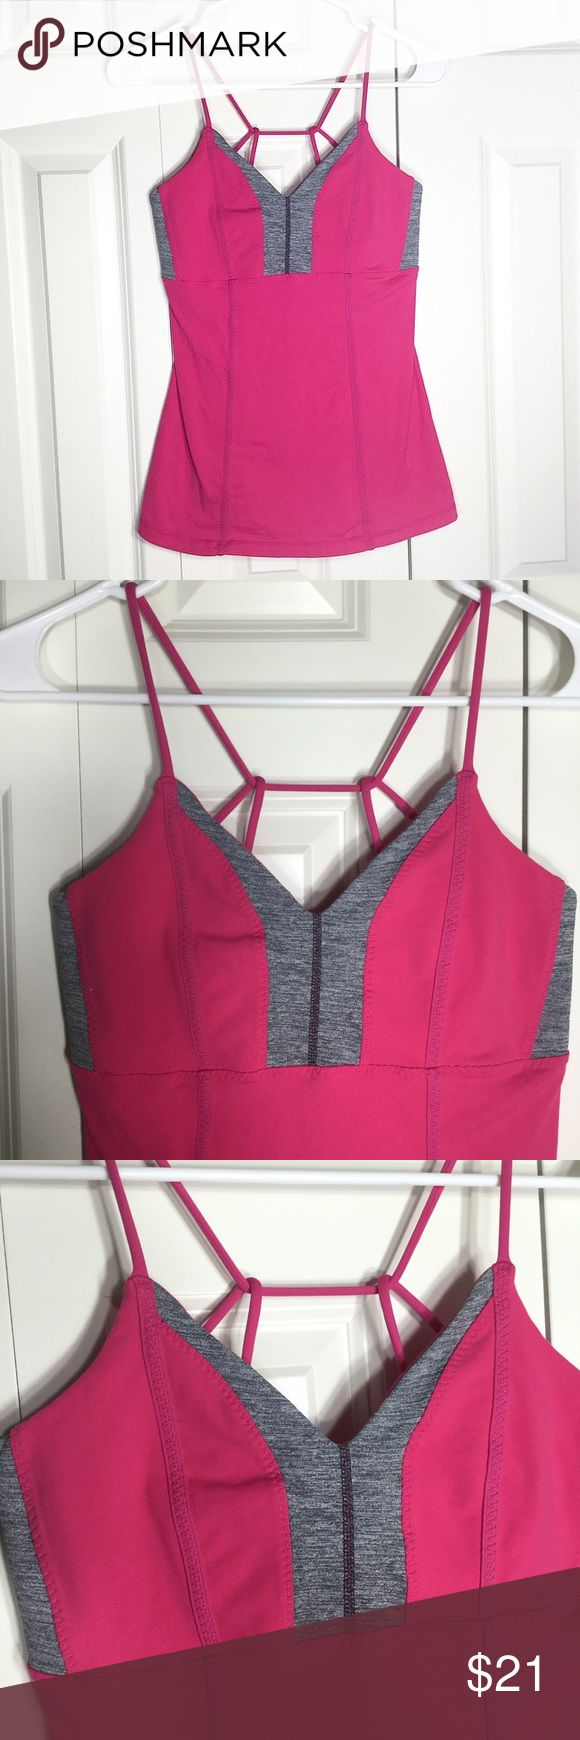 ❣️LULULEMON | pink strappy tank top❣️ •super cute Lululemon workout tank, with unique strap detail, and flattering neck line •size 6 •gently worn, but in excellent condition!   IG: @notyourhamper 📸 Same day shipping!📆 Pet/smoke free home!🚭 Offers encouraged!💸 Bundle & save!🛍  Thanks for looking, xo💋 lululemon athletica Tops Tank Tops